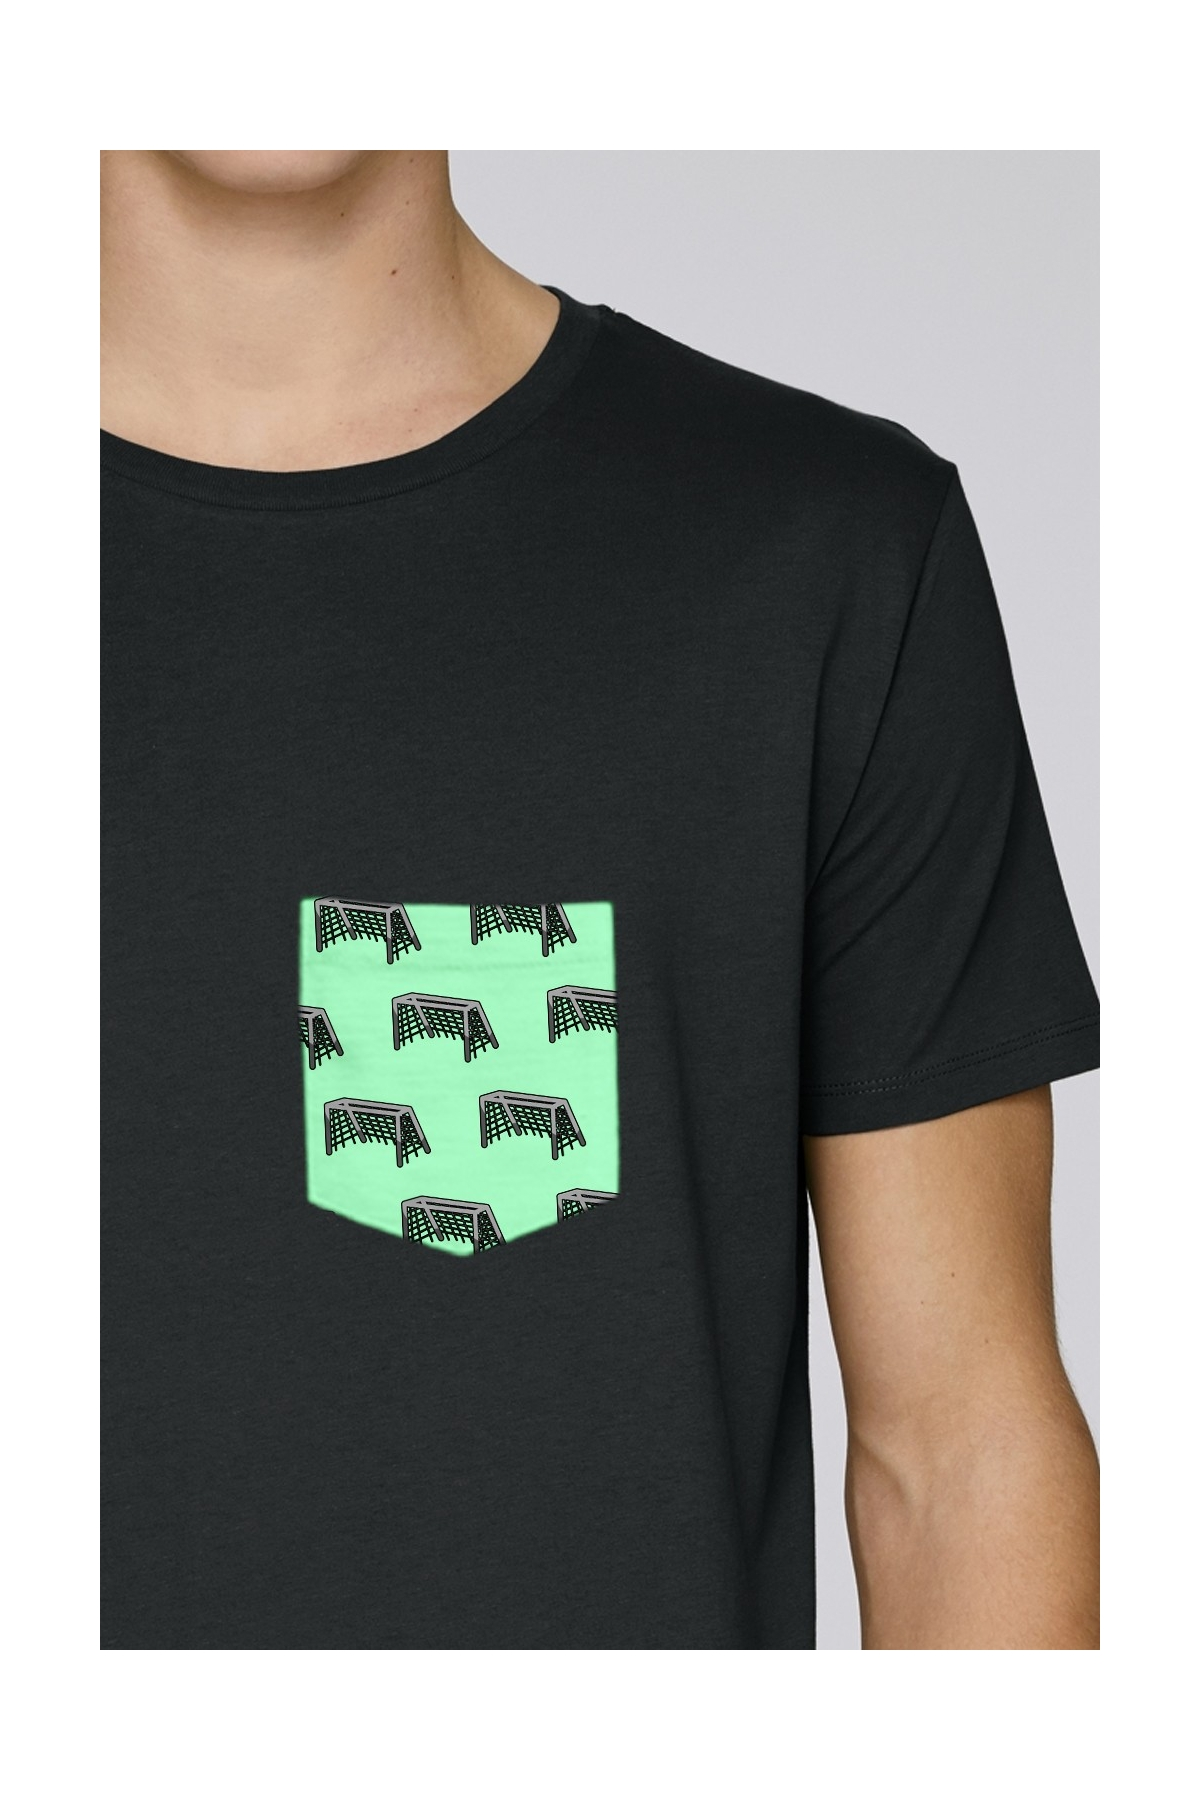 T-shirt But Football Goals - Poche Coton Bio